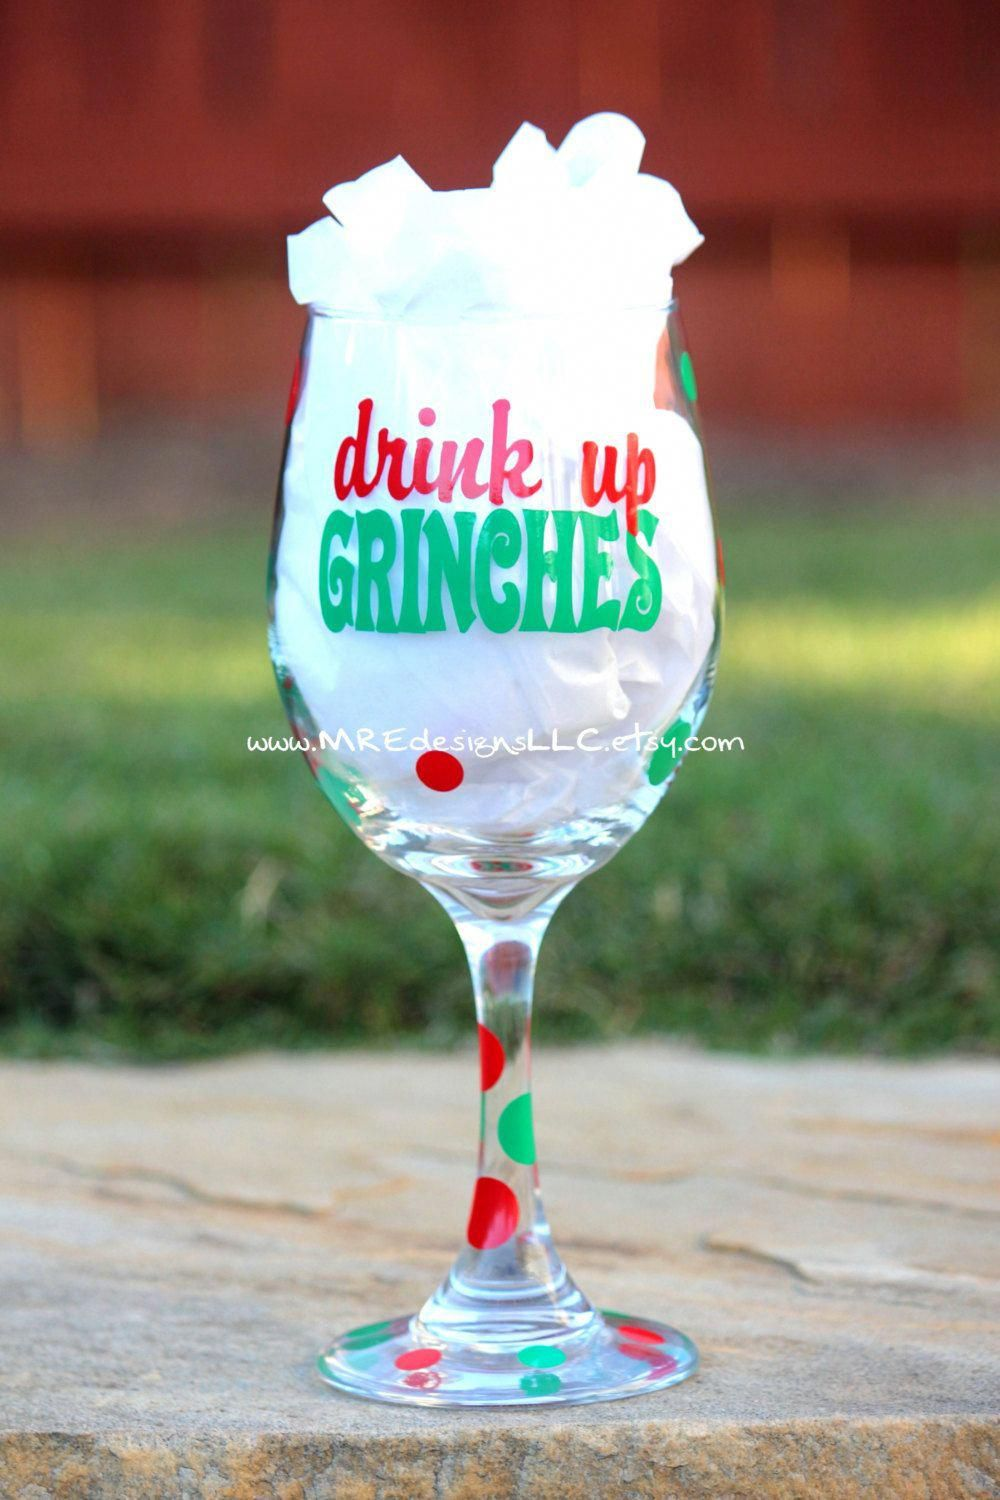 Ships NEXT DAY Drink Up GRINCHES Christmas Birthday